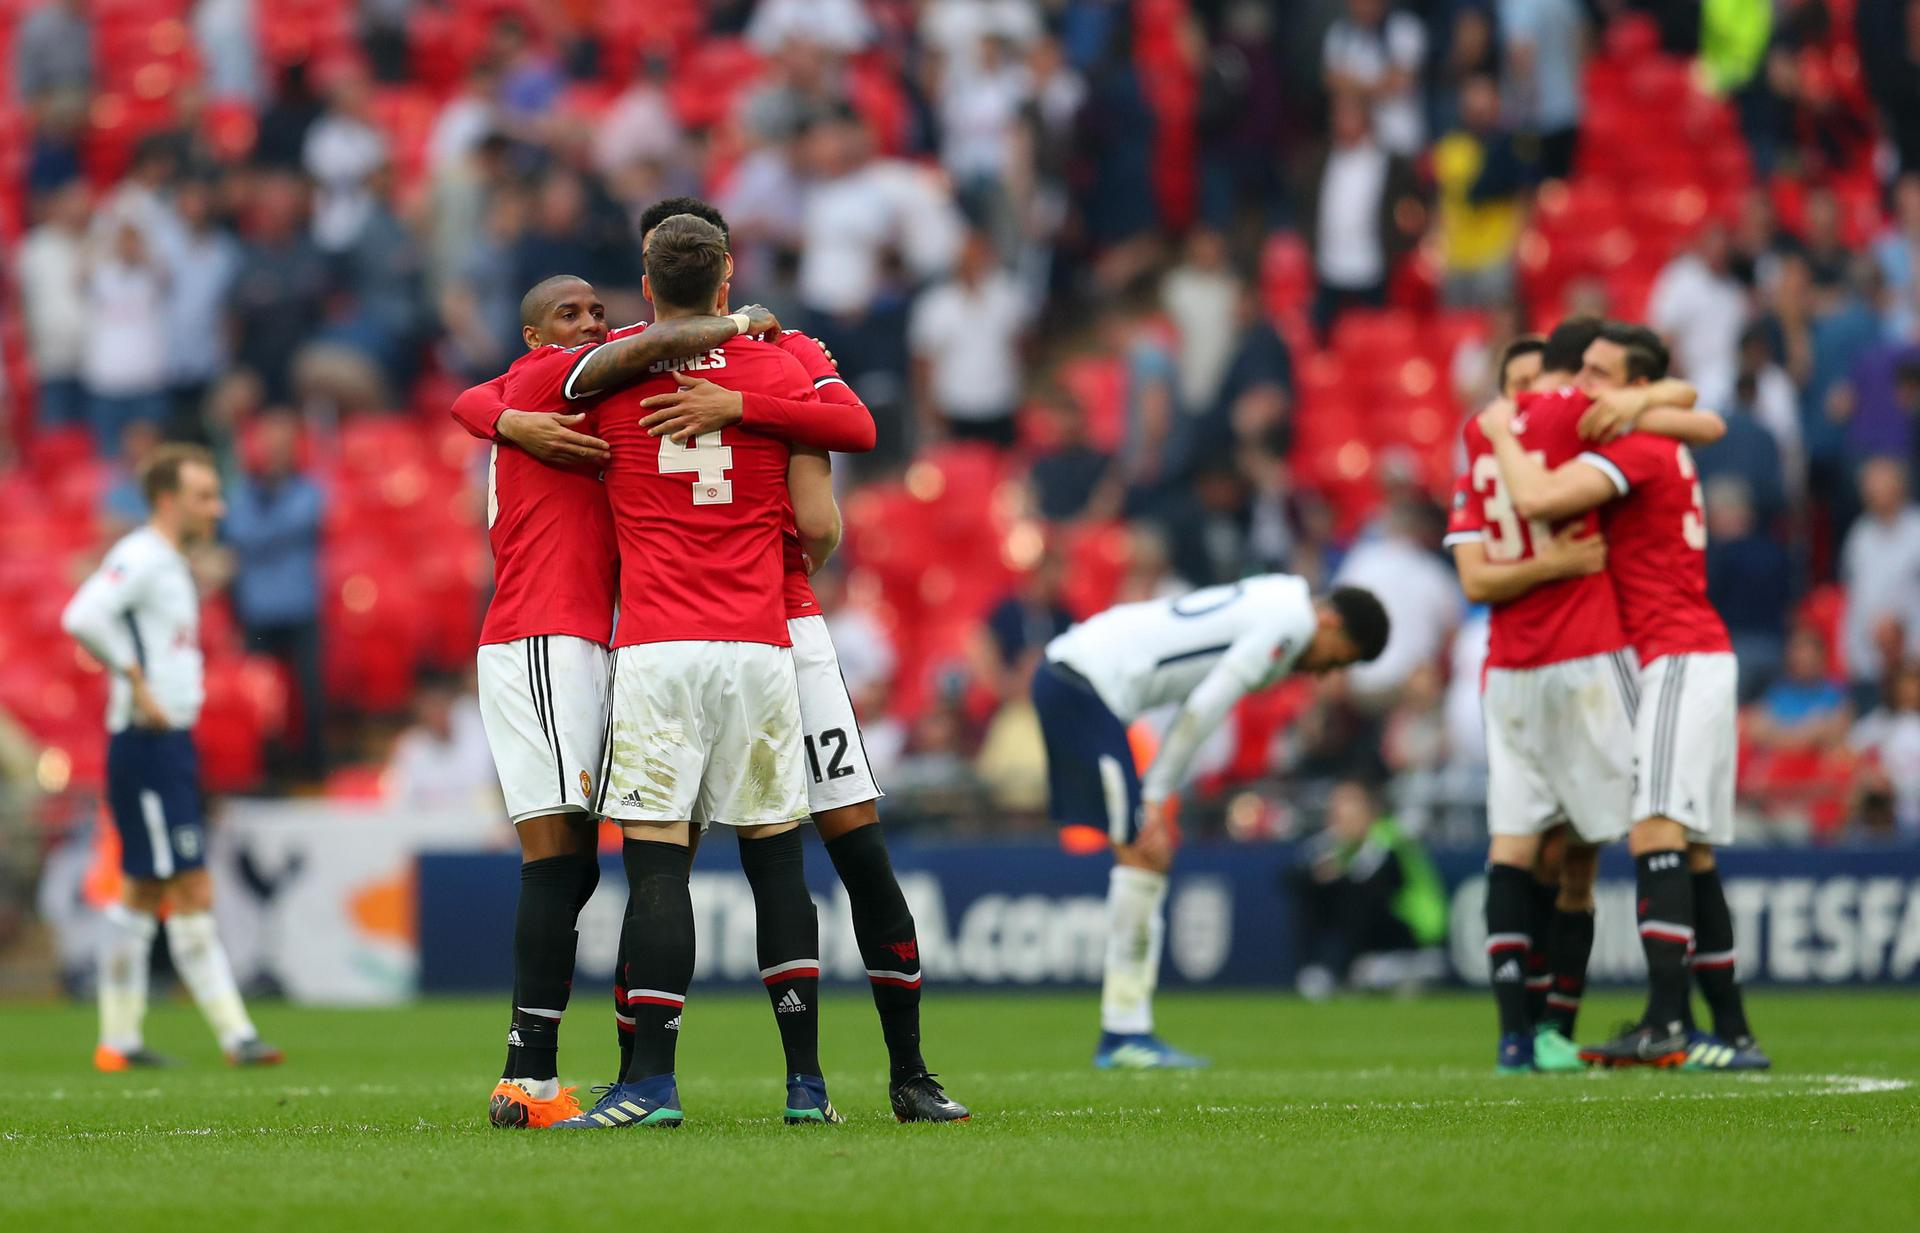 Man United players celebrate the FA Cup semi-final win over Tottenham